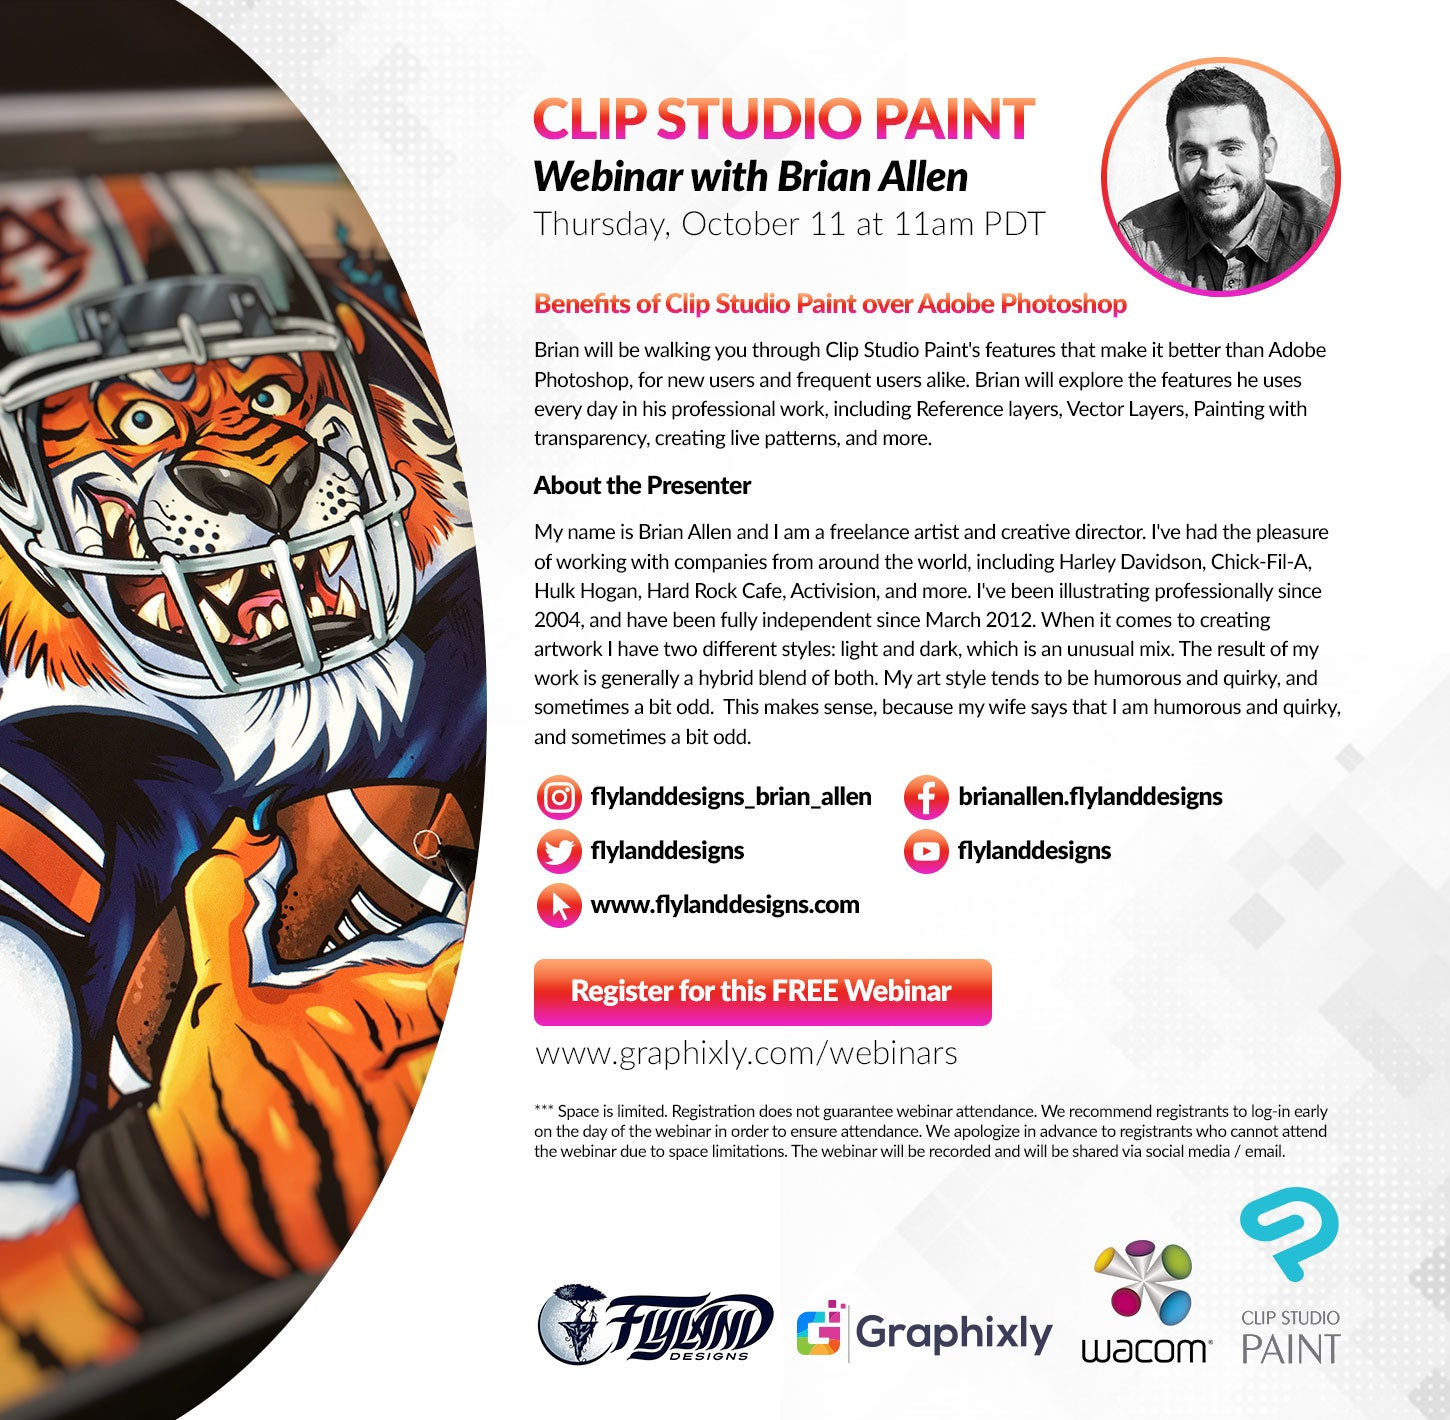 Webinar - Benefits of CLIP STUDIO PAINT over Adobe Photoshop with Brian Allen